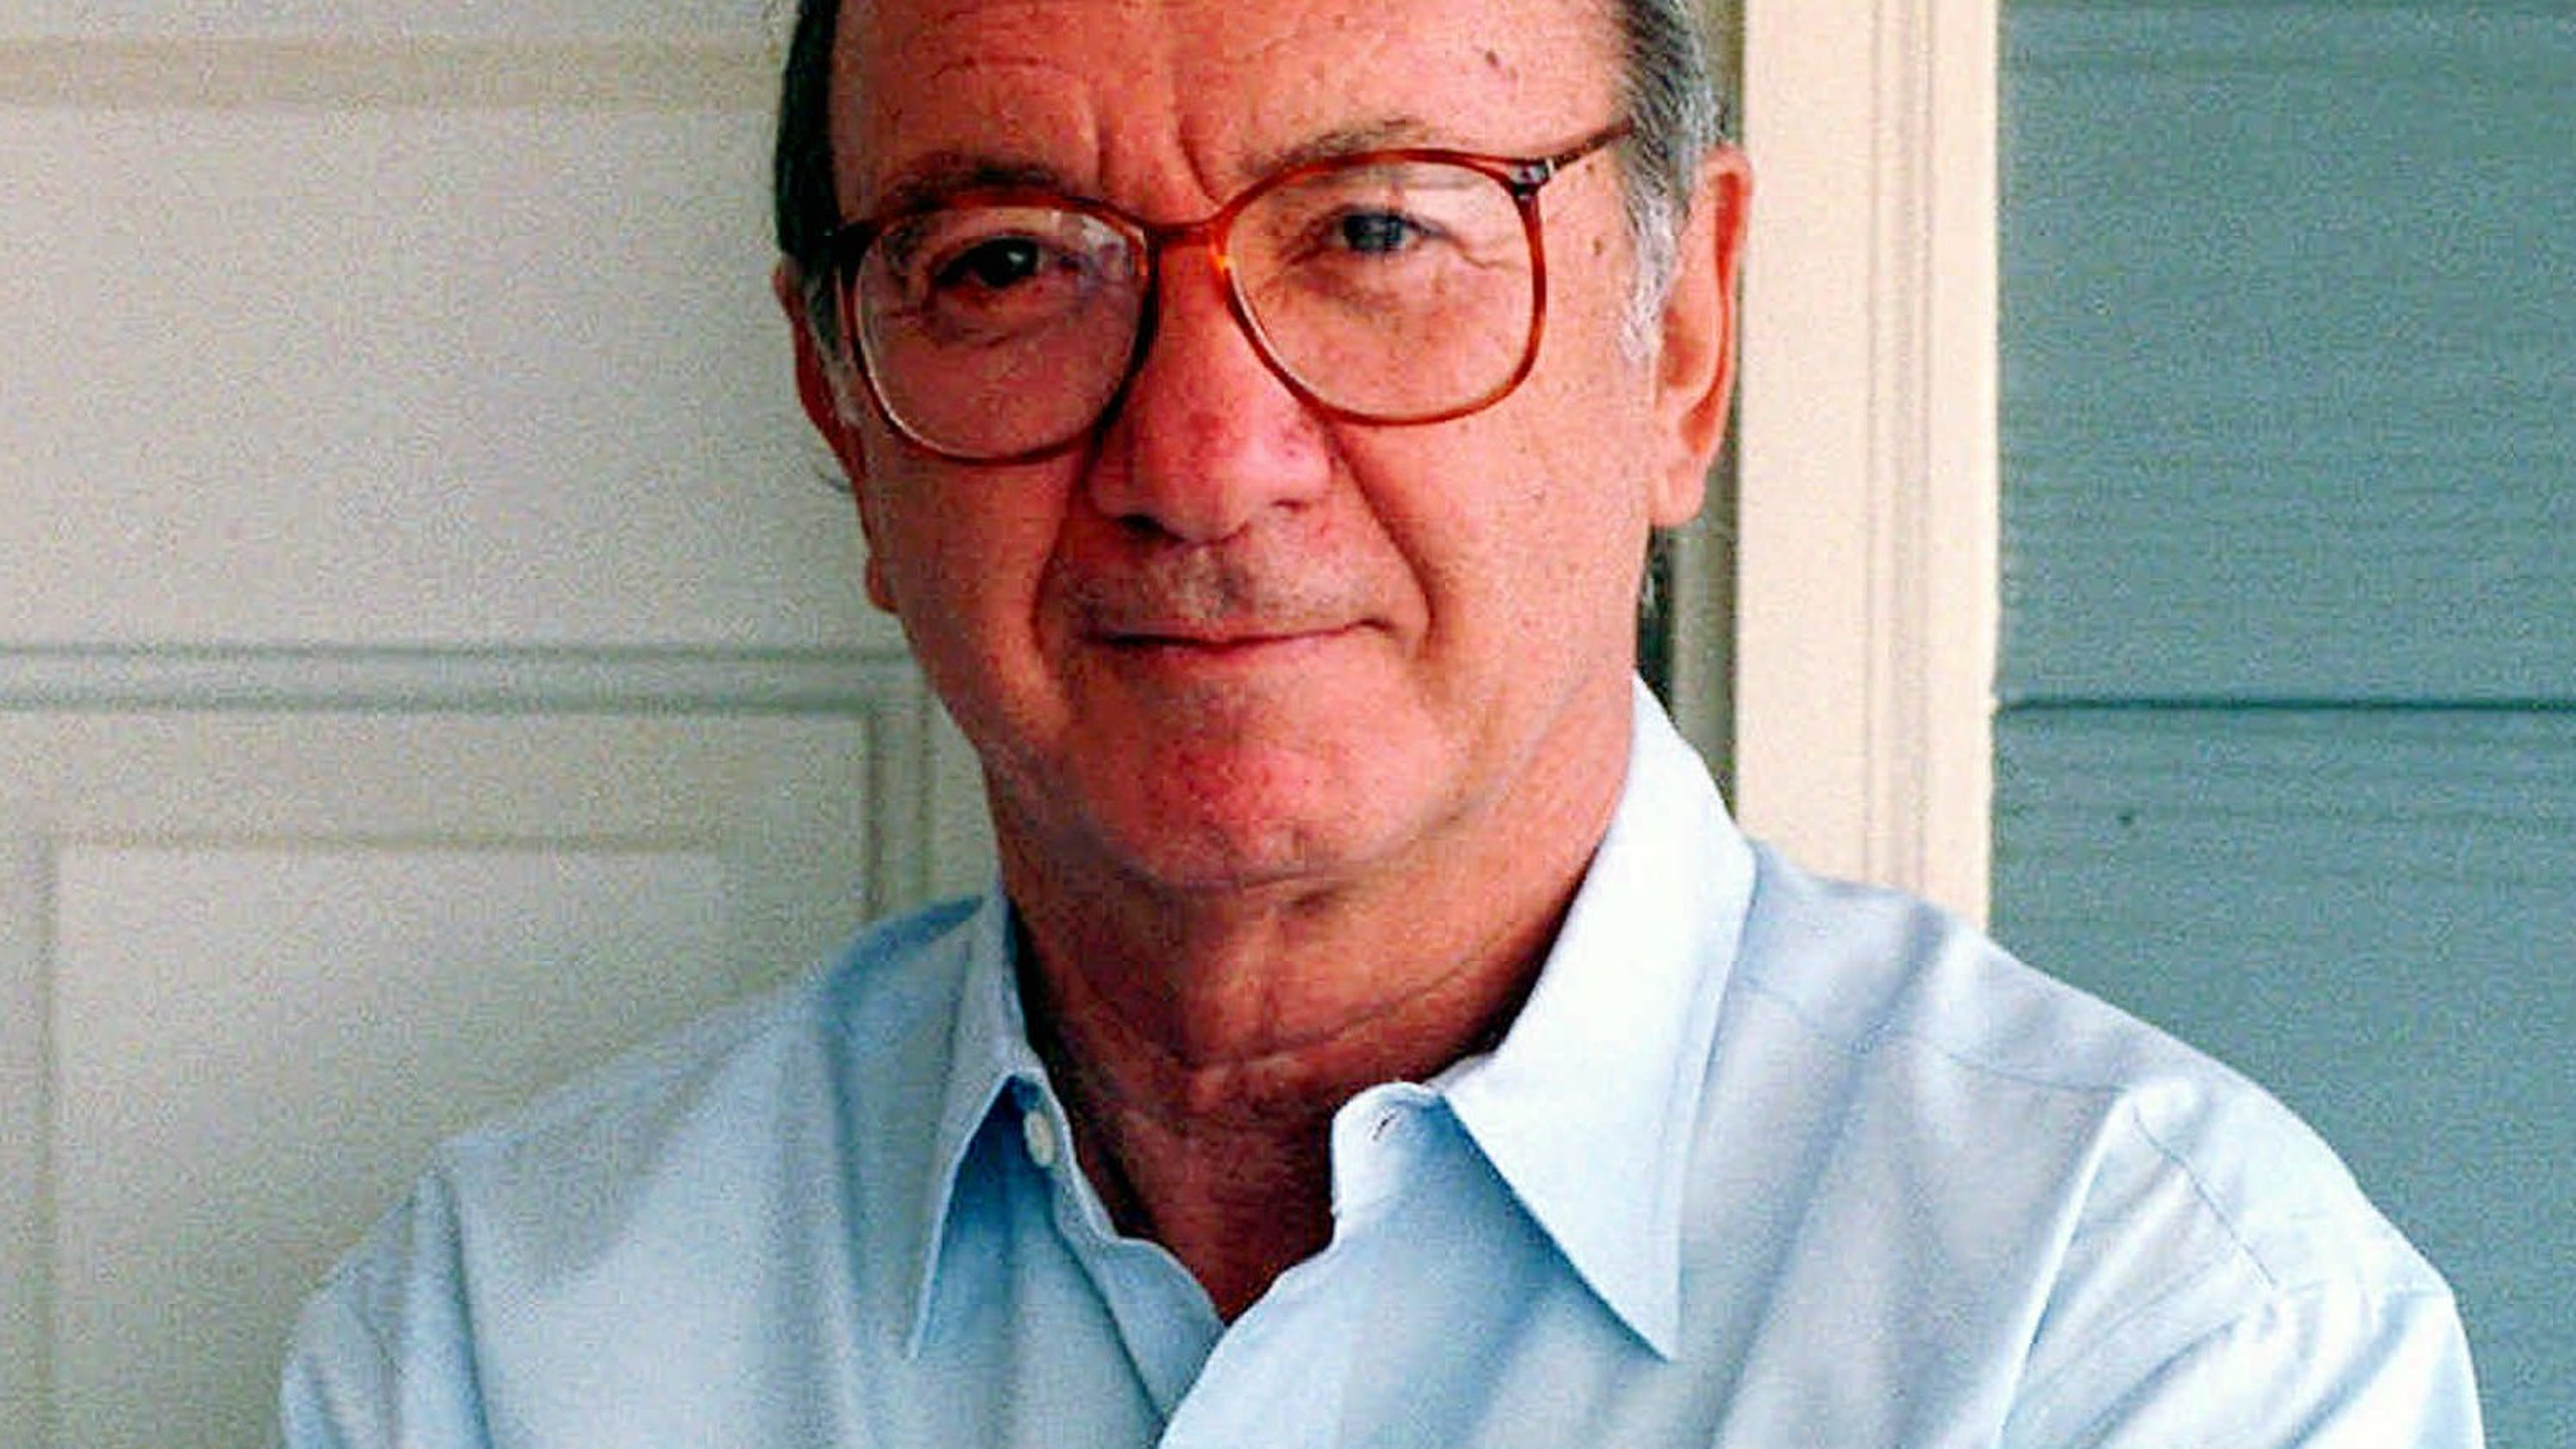 Neil Simon, who wrote 'The Odd Couple' and 'Sweet Charity,' dies at 91